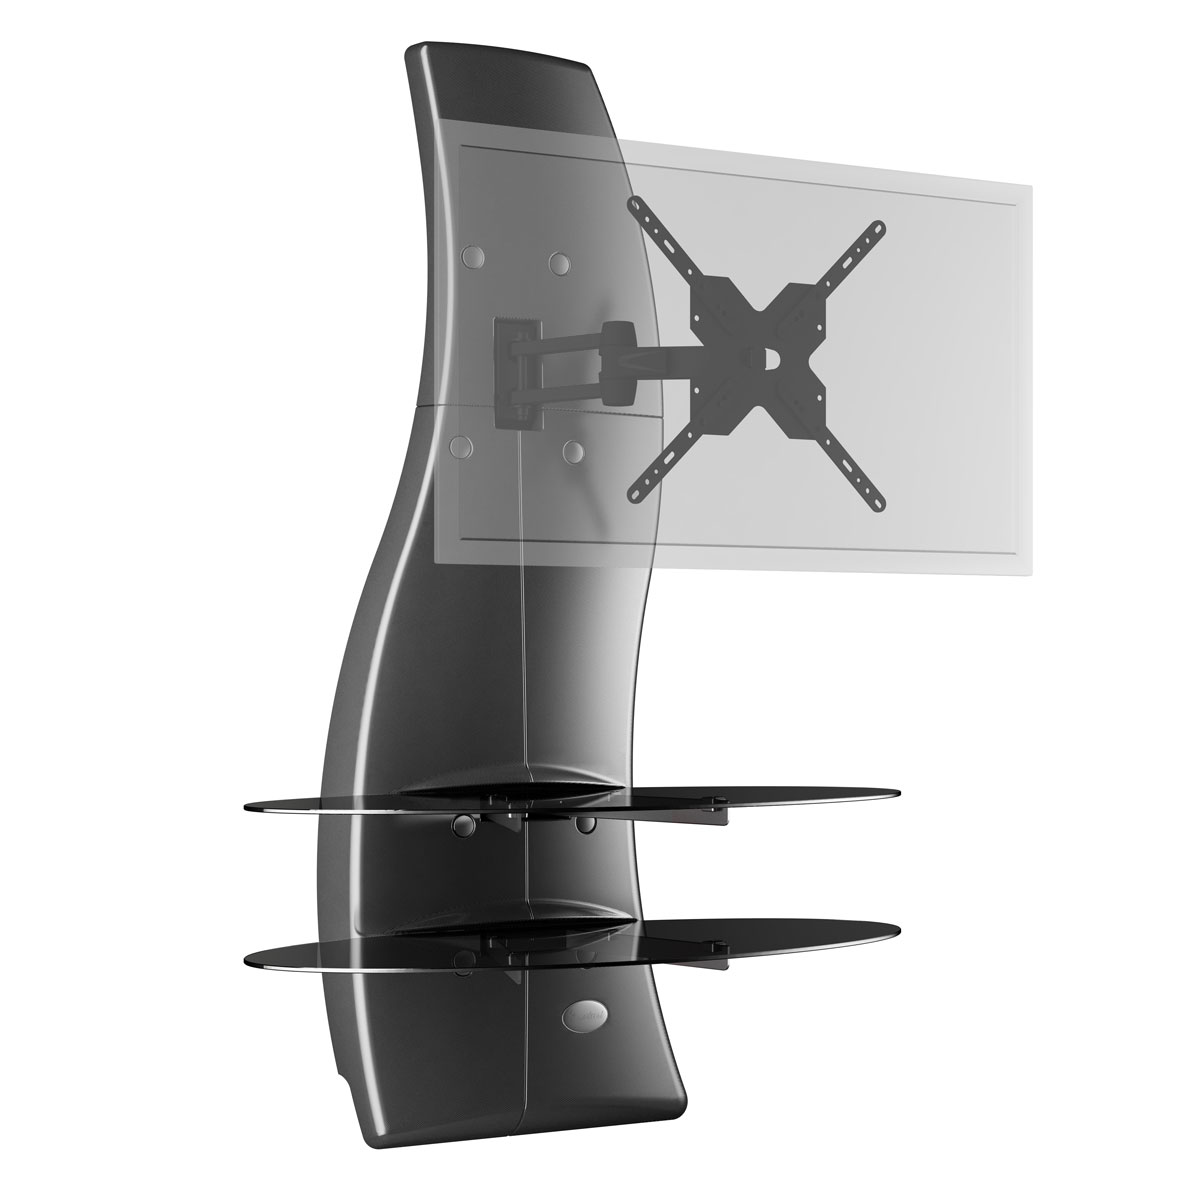 Meliconi ghost design 2000 rotation carbone meuble tv meliconi sur ldlc - Support tv mural design ...